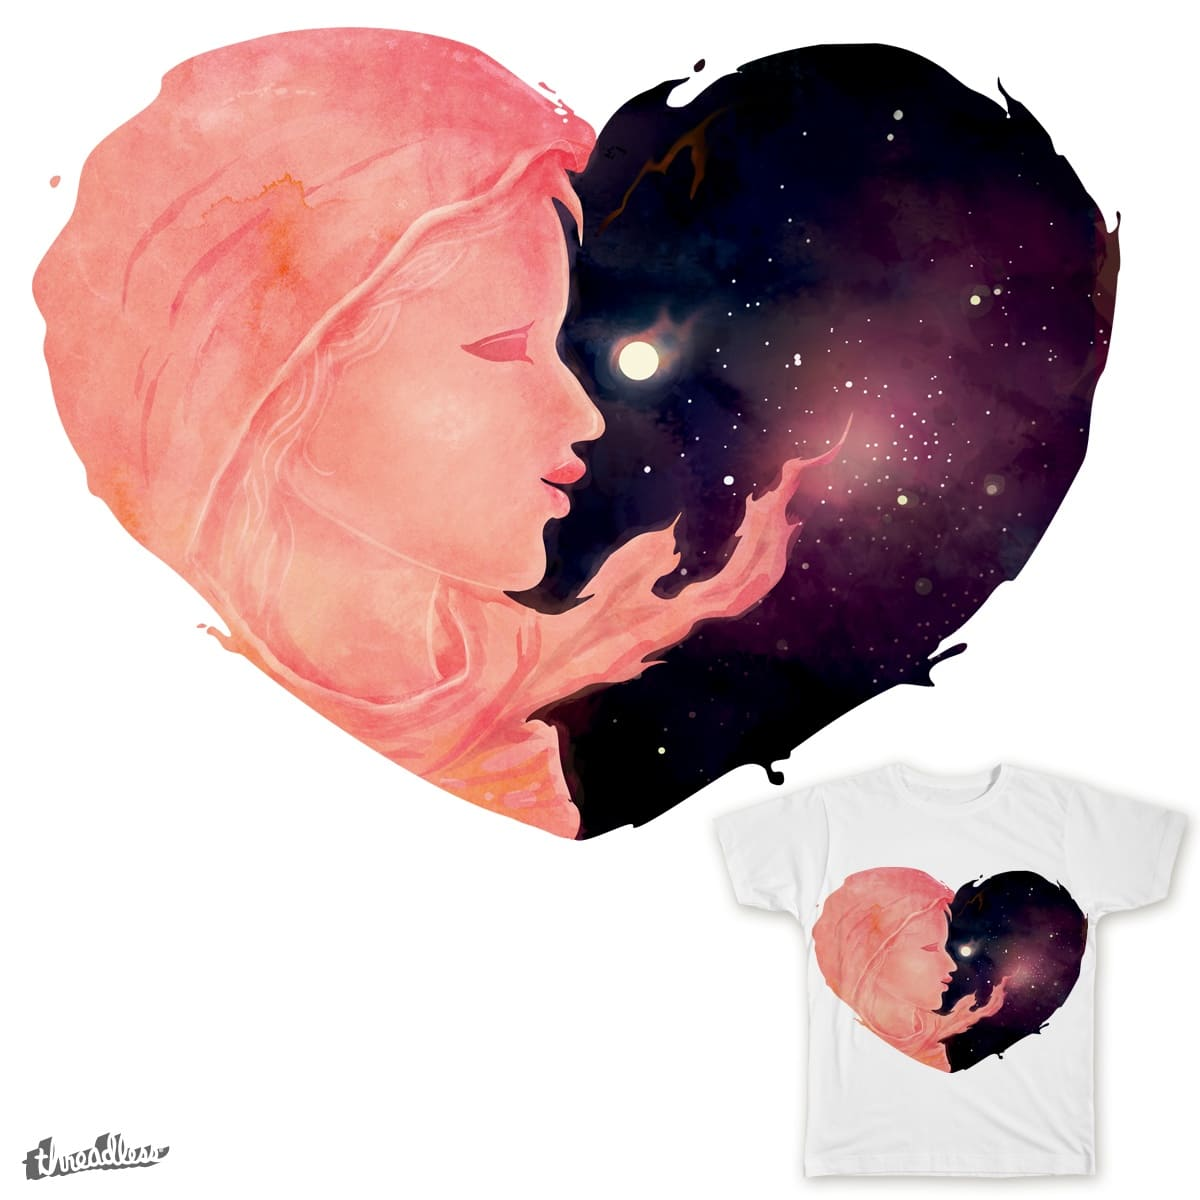 Beauty And The Beast by ken arok on Threadless